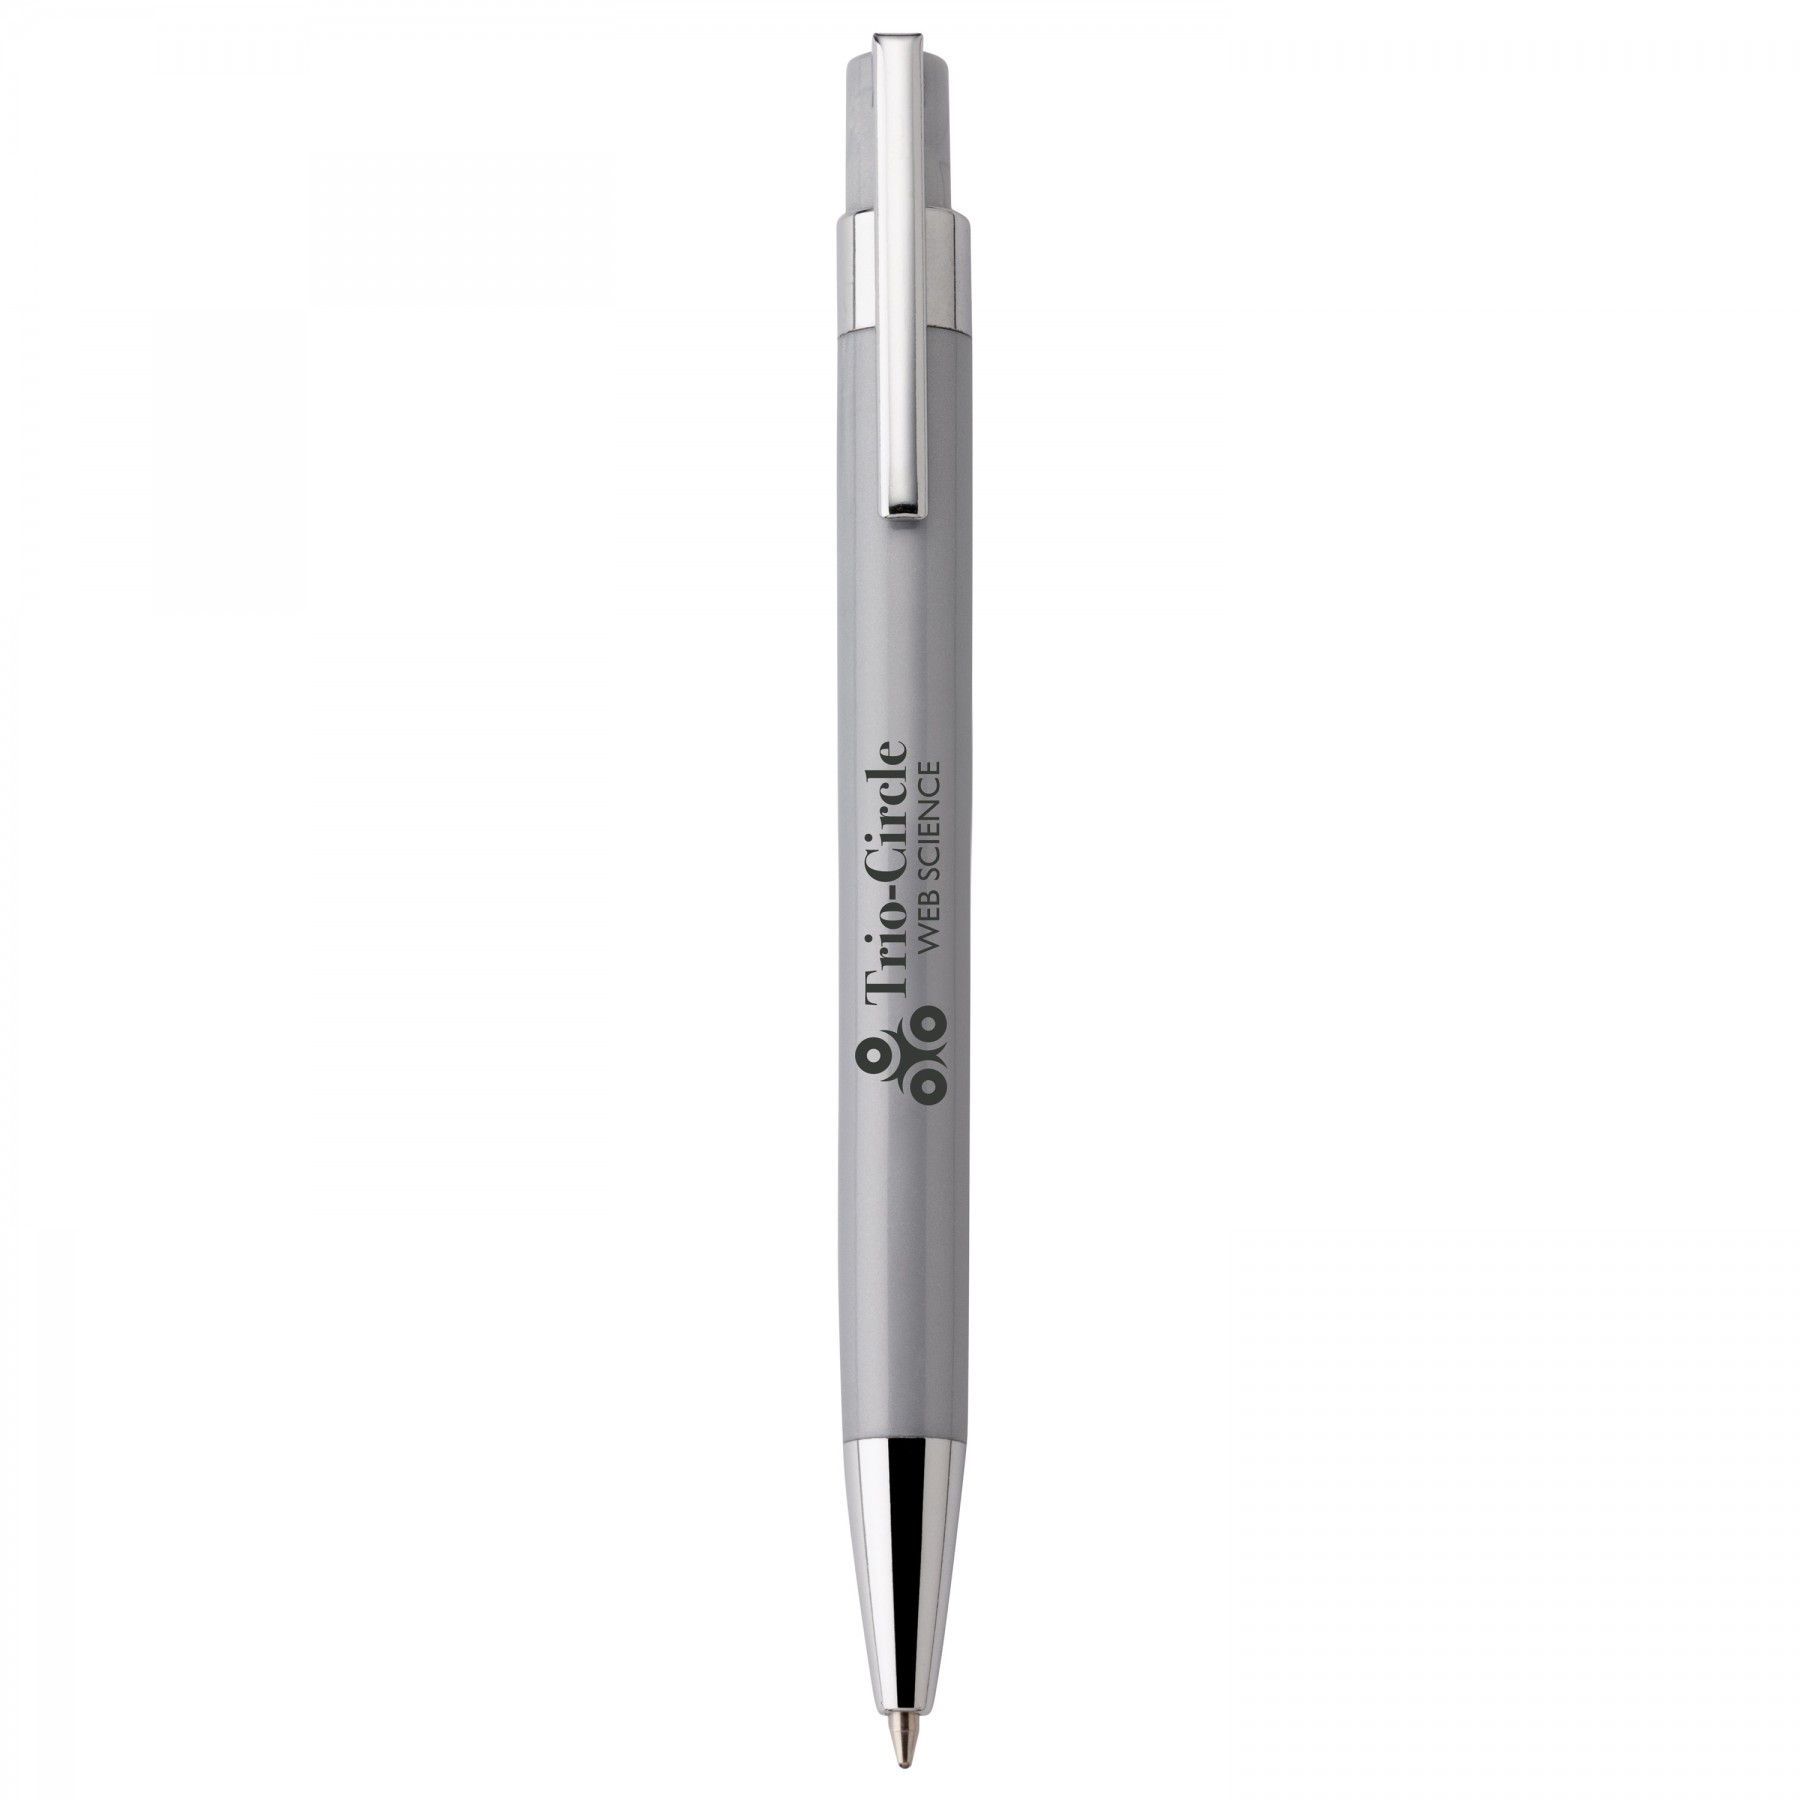 Tempest Ballpoint Pen, G1127, One Colour Imprint